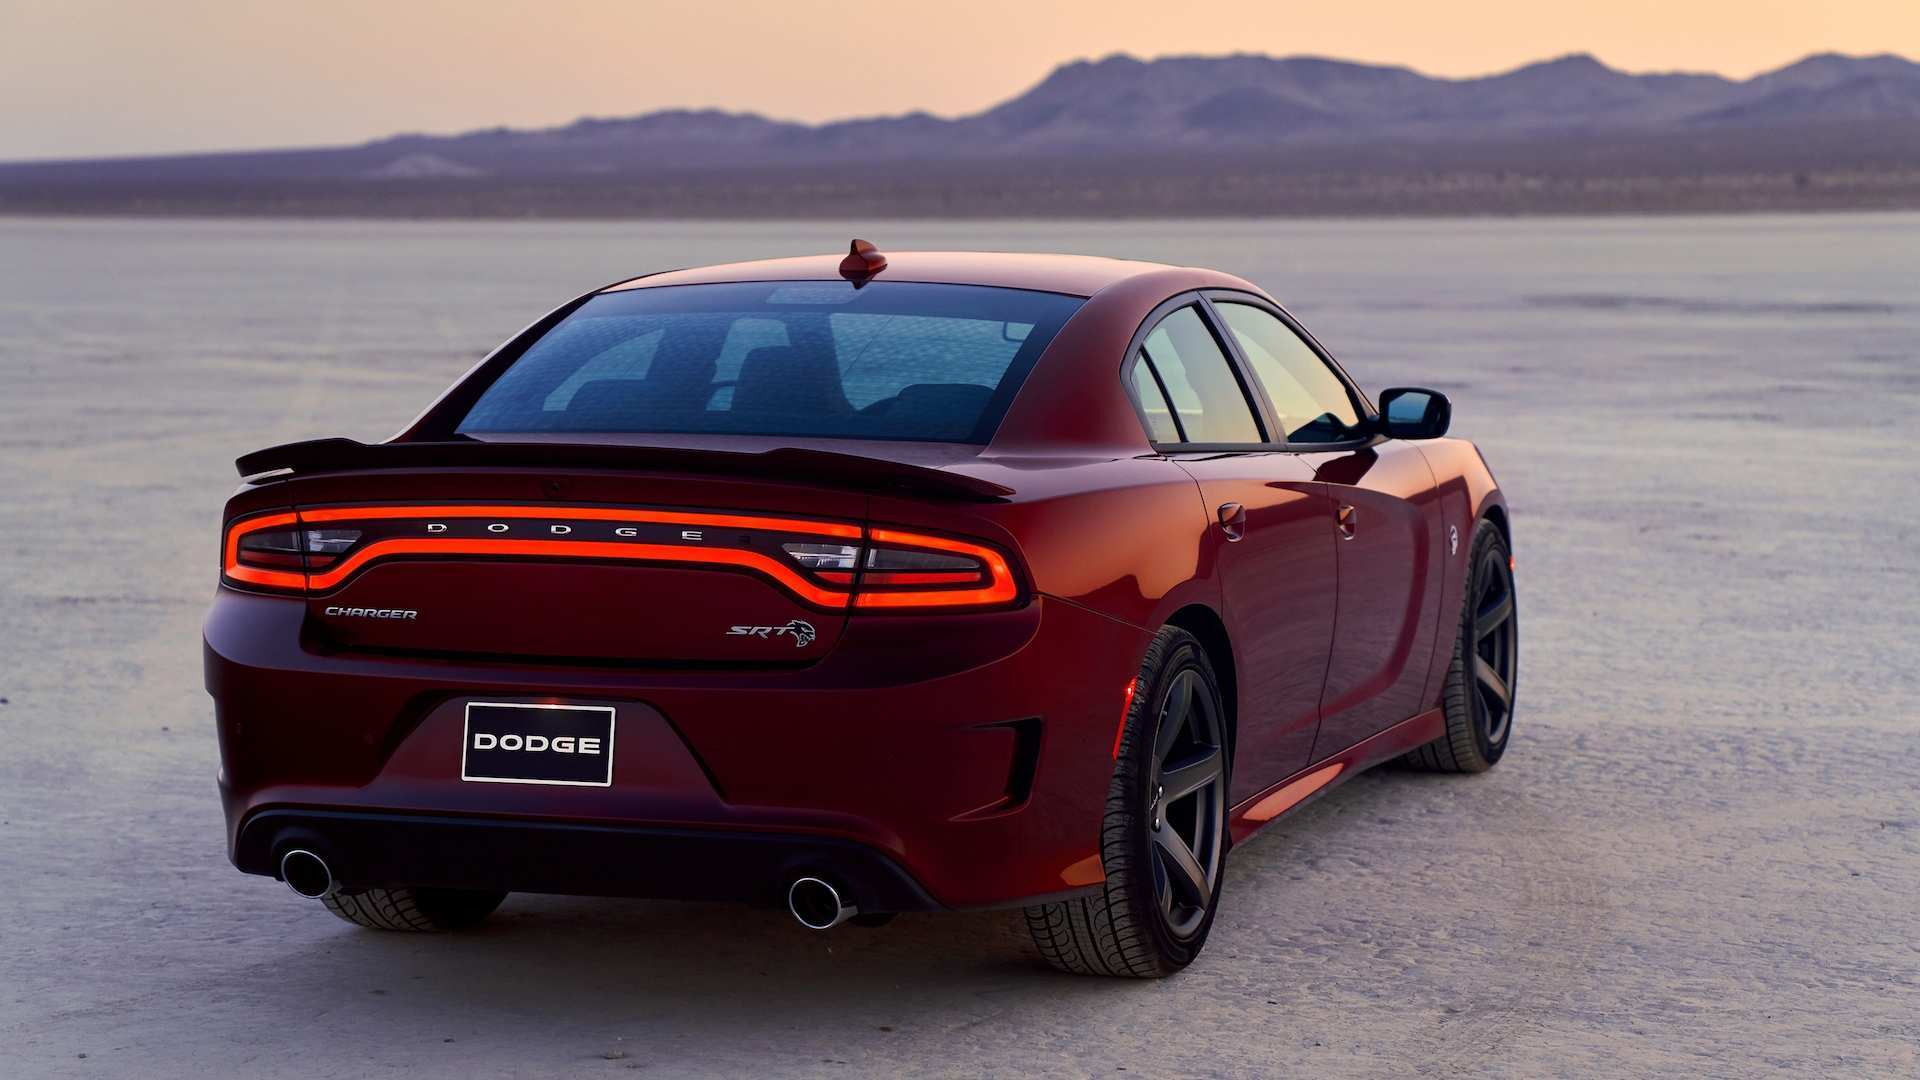 80 New The Dodge Charger 2019 Concept Spy Shoot Performance with The Dodge Charger 2019 Concept Spy Shoot